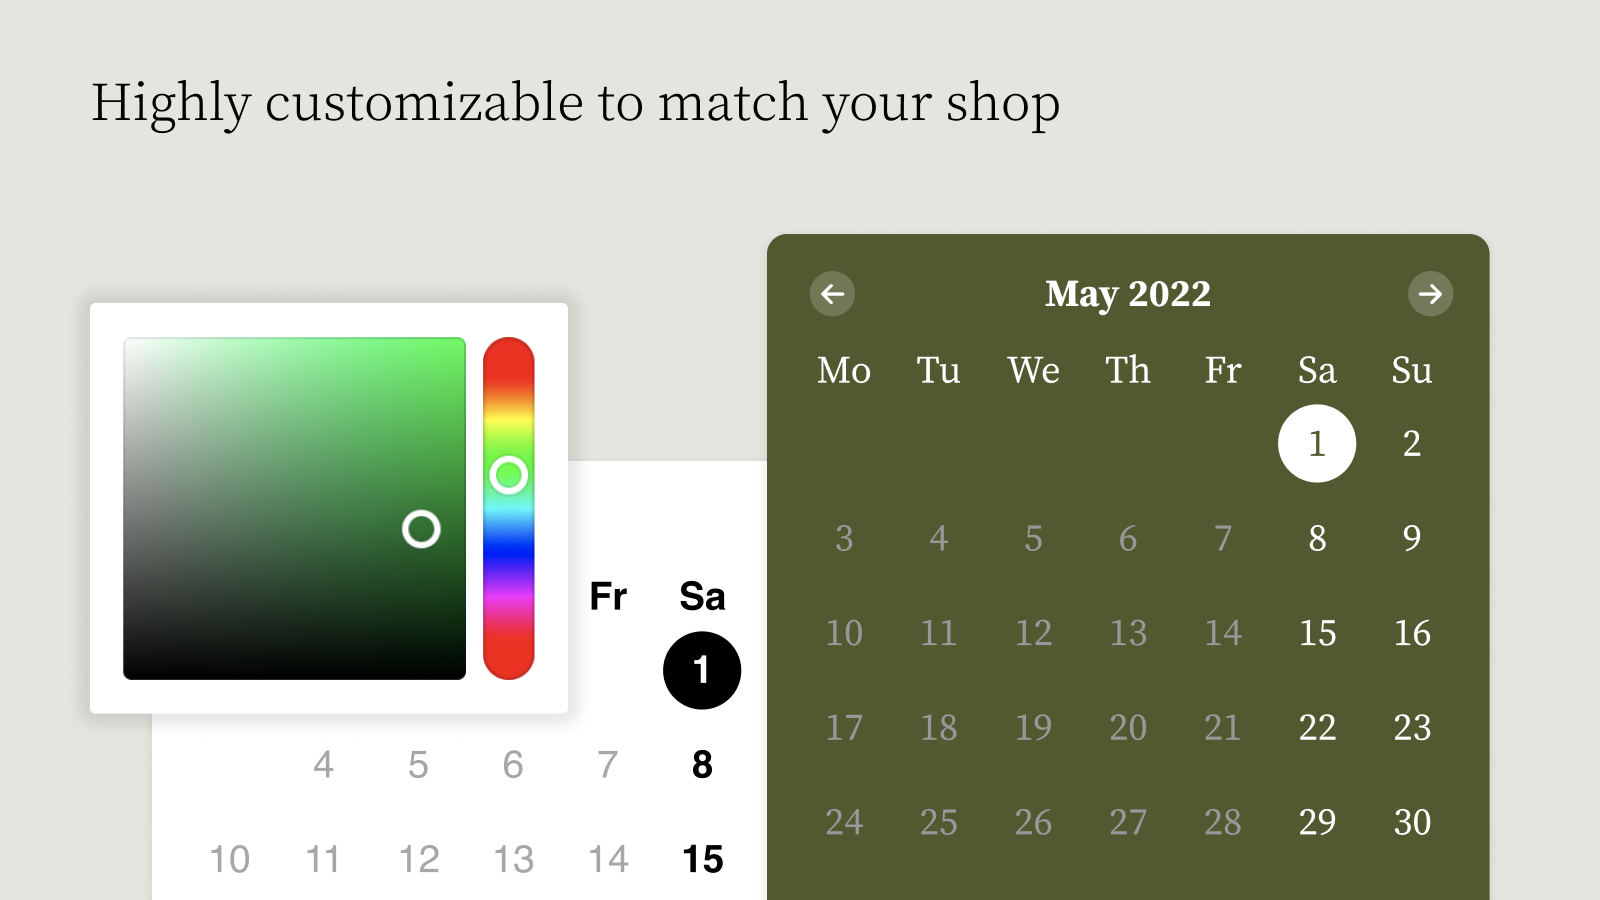 Customise the calendar to match your shop